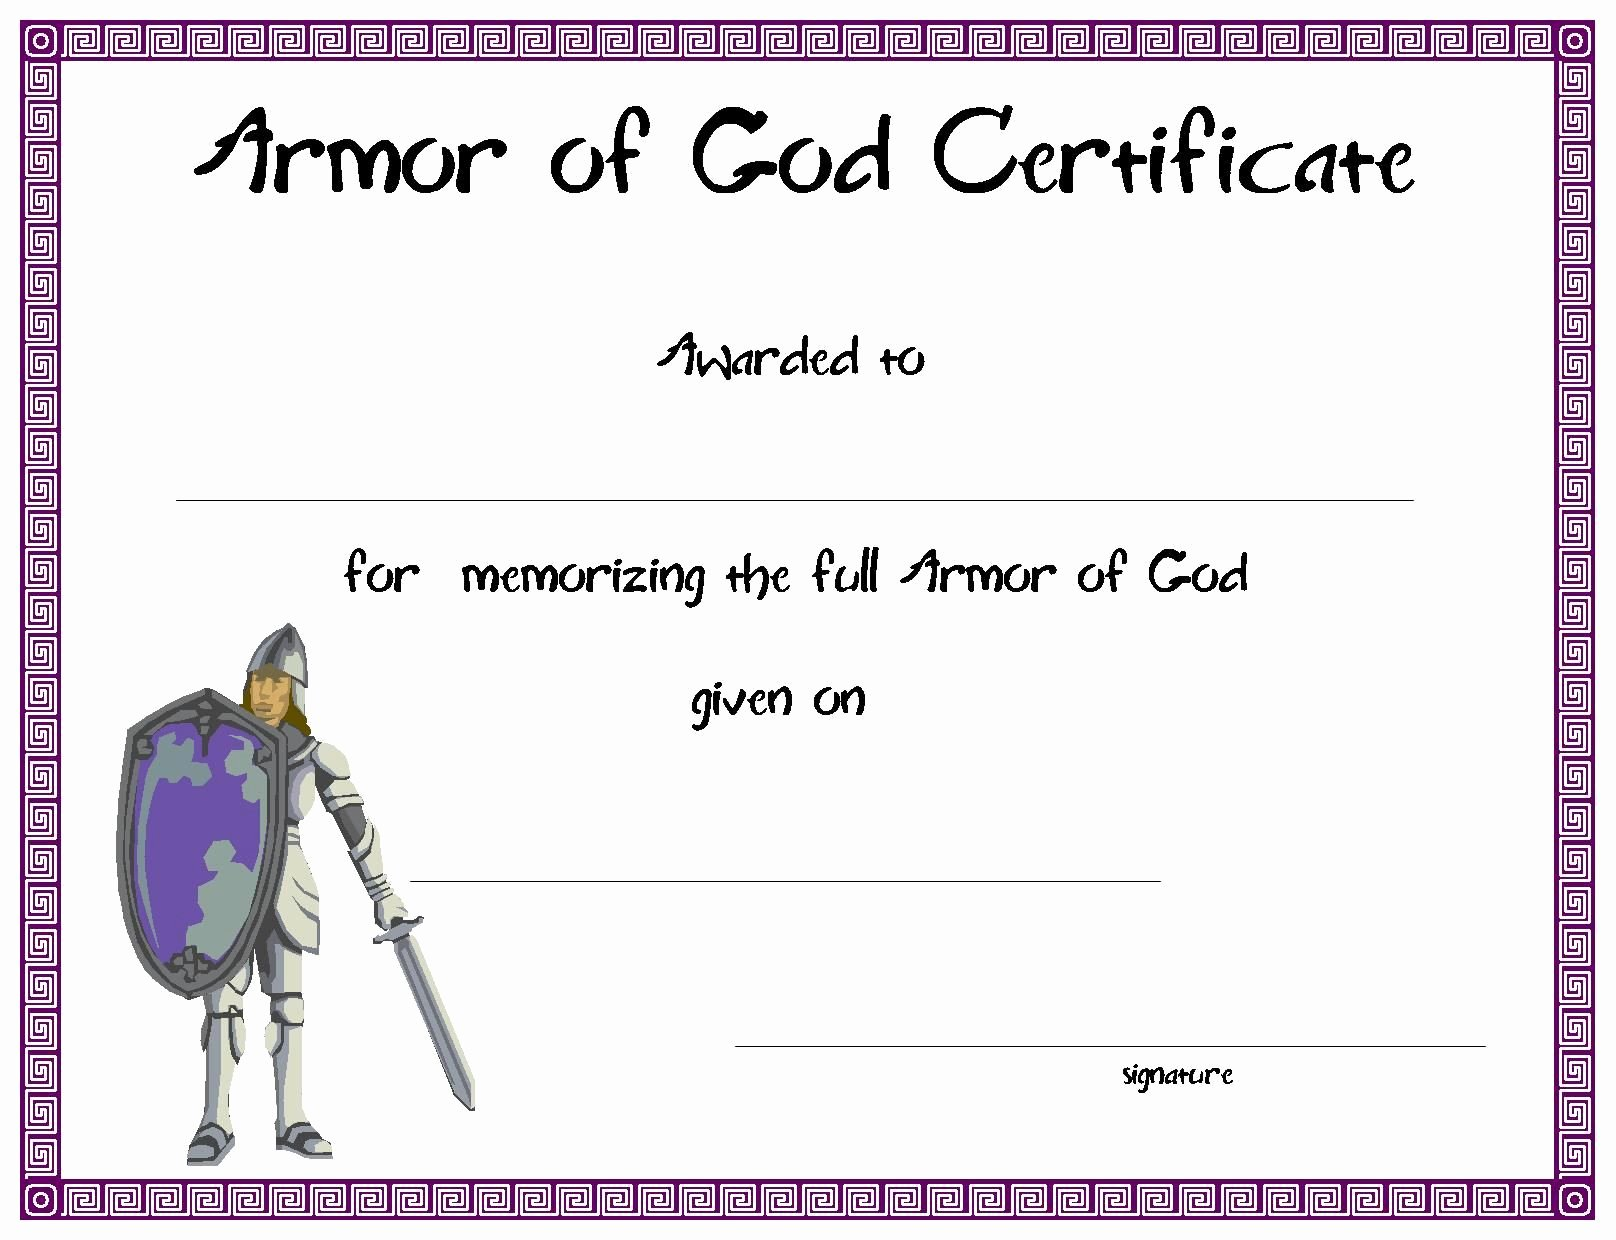 Vacation Bible School Certificate Of Completion Luxury Armor Of God Certificate for